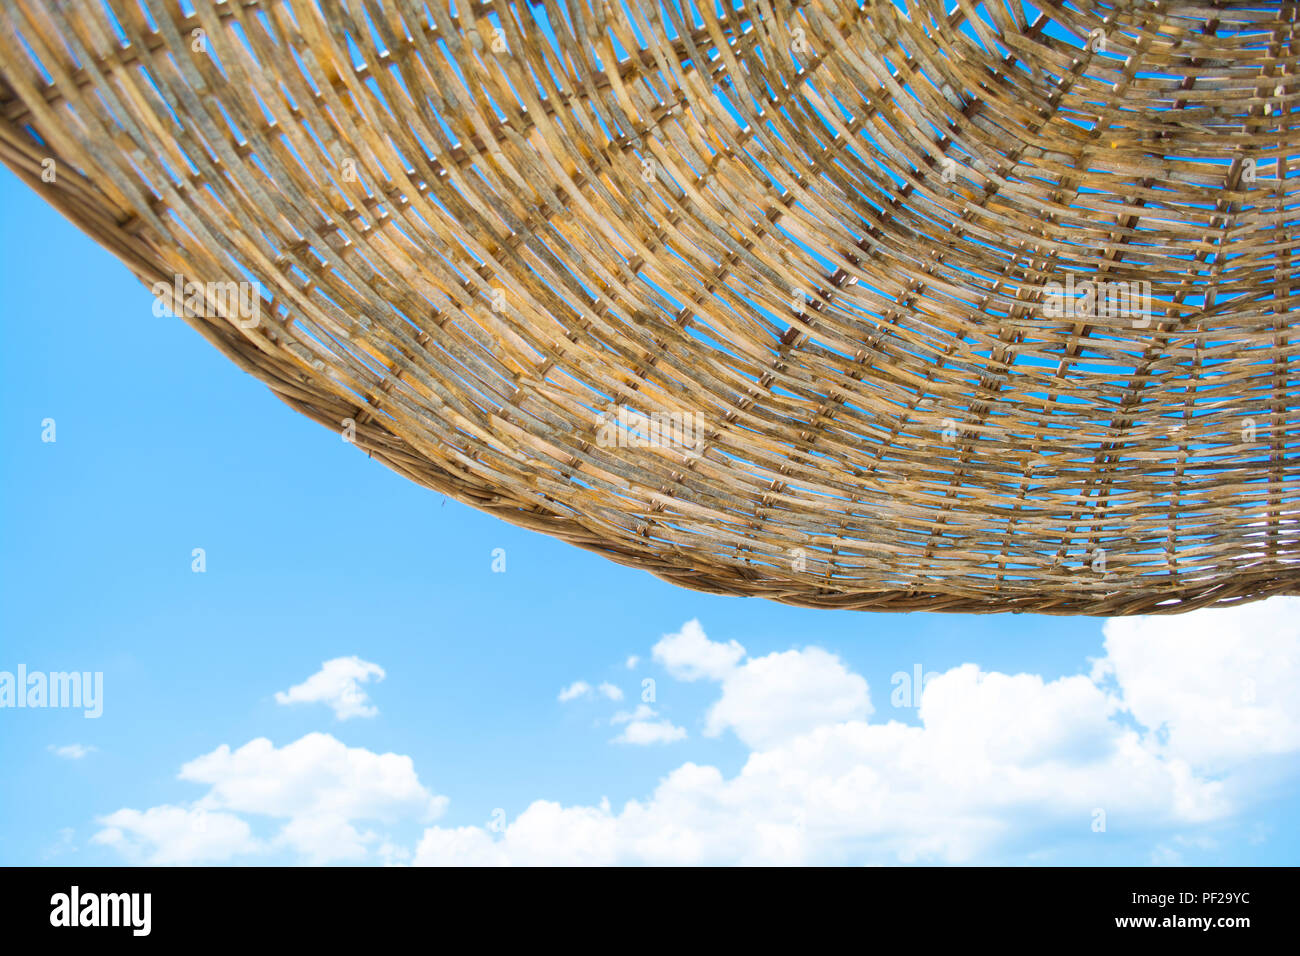 Beach Straw Umbrella with Clear Blue Sky on Sunny Summer Day. Beach Umbrella Wallpaper Background. - Stock Image